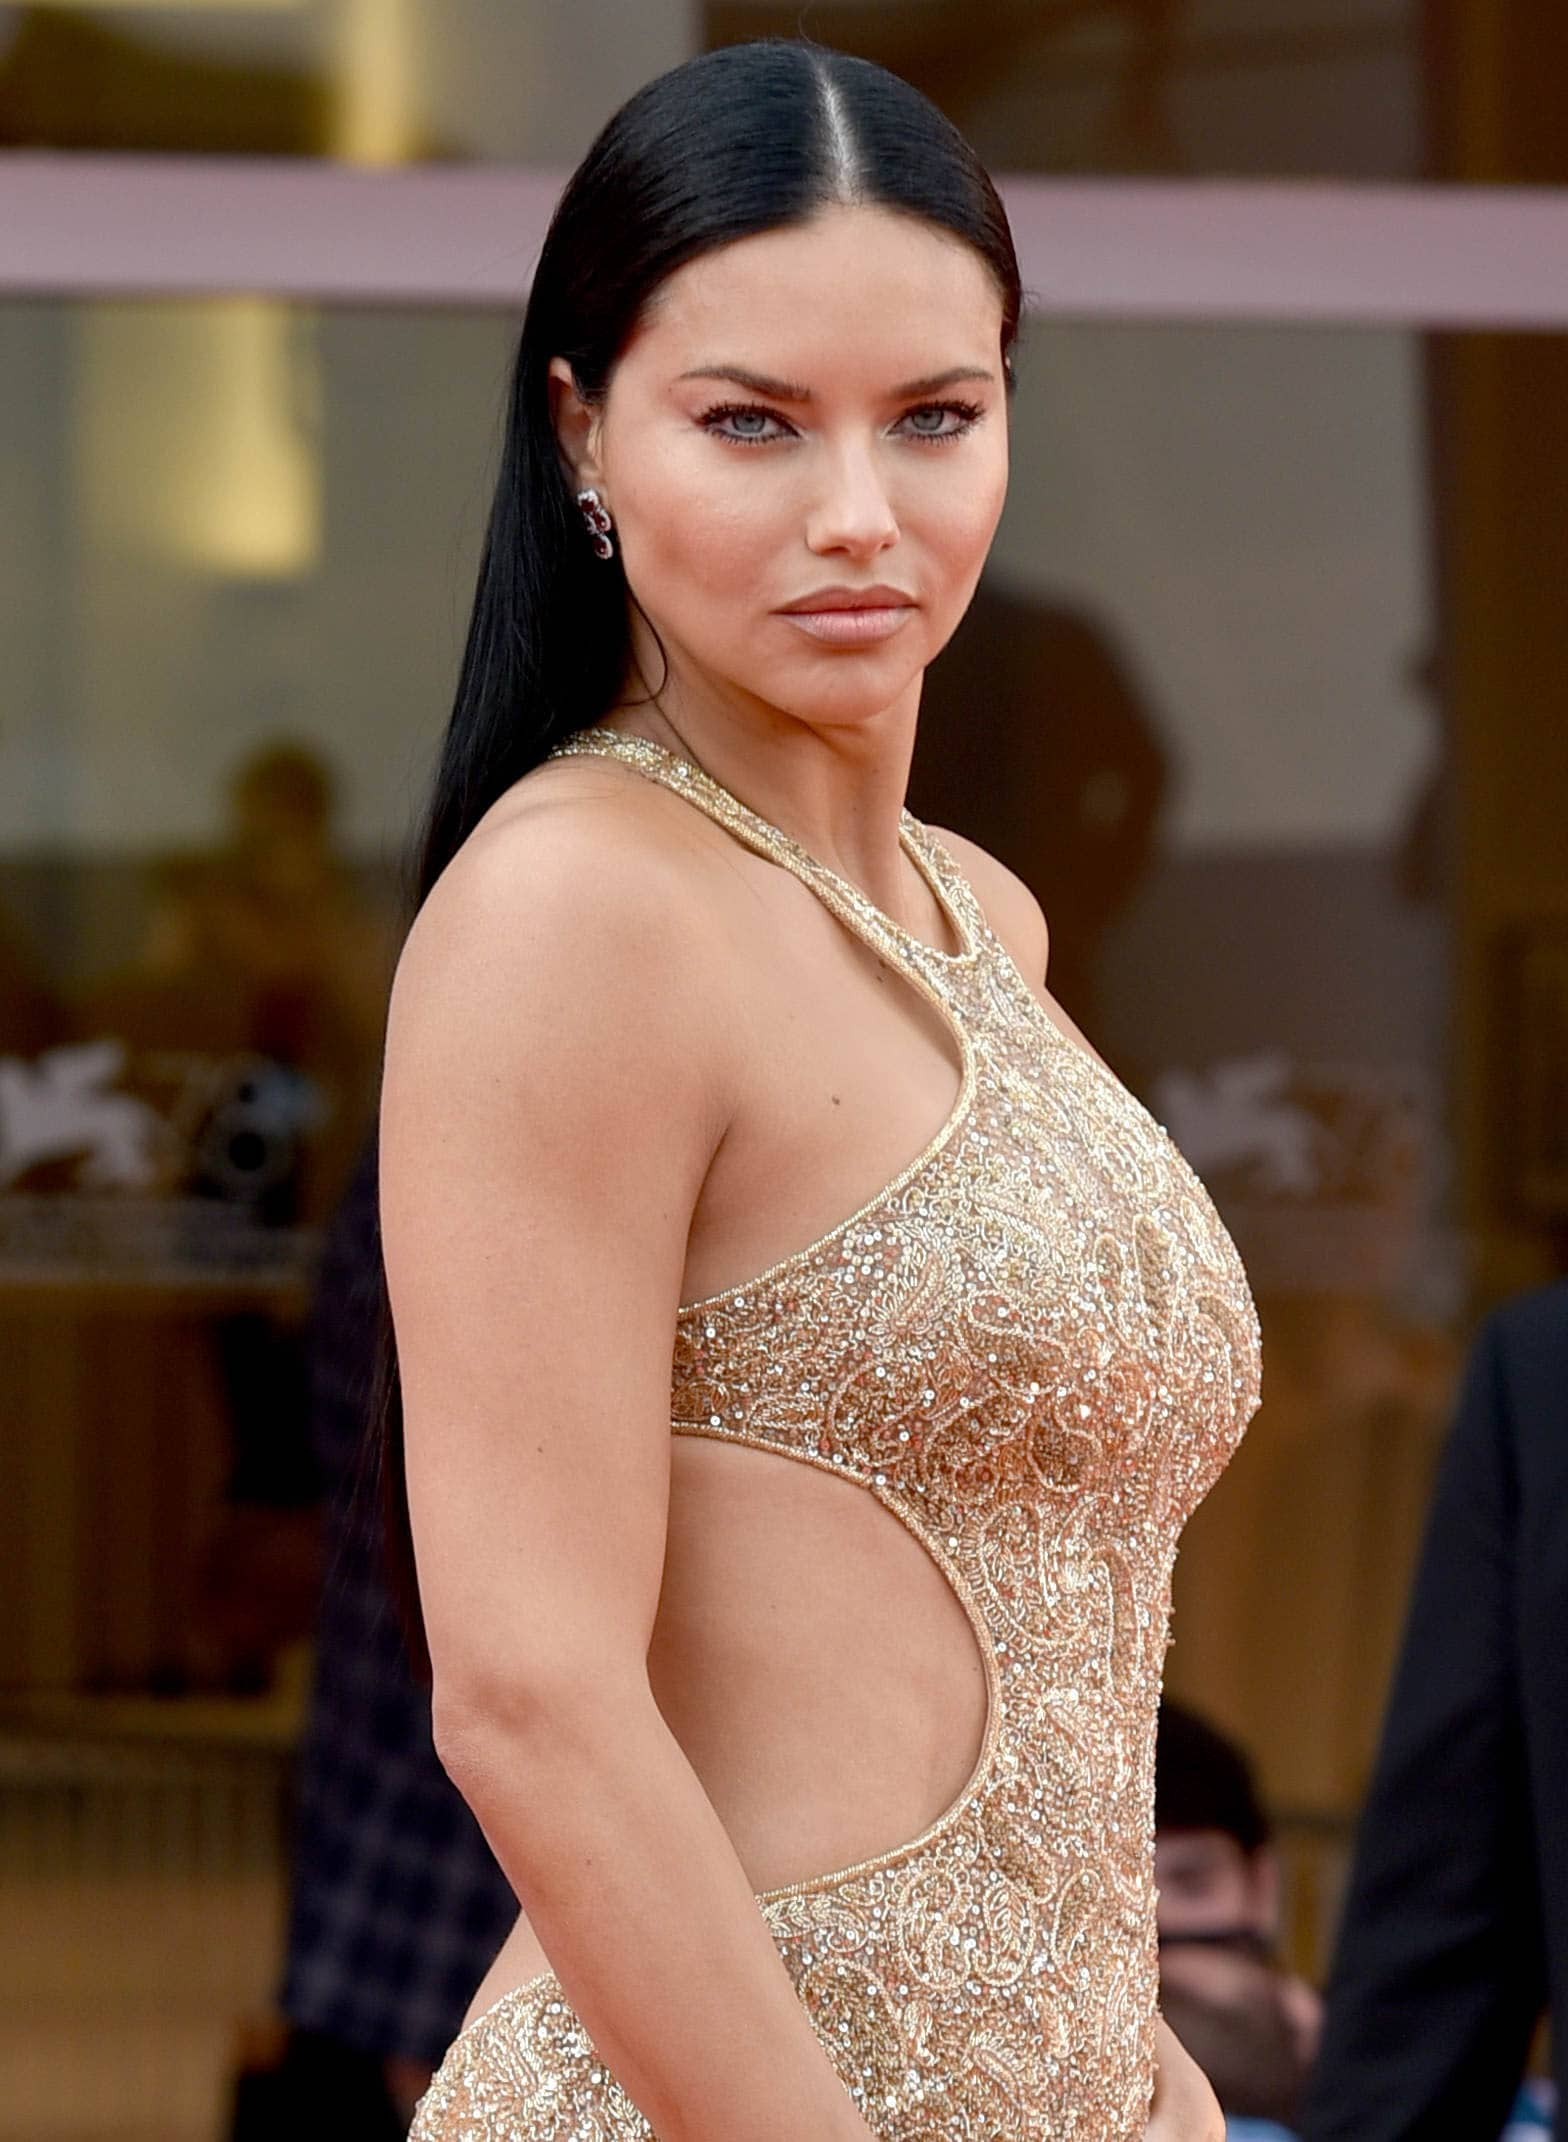 Adriana Lima accentuates her features with mascara, eyeliner, and nude lipstick